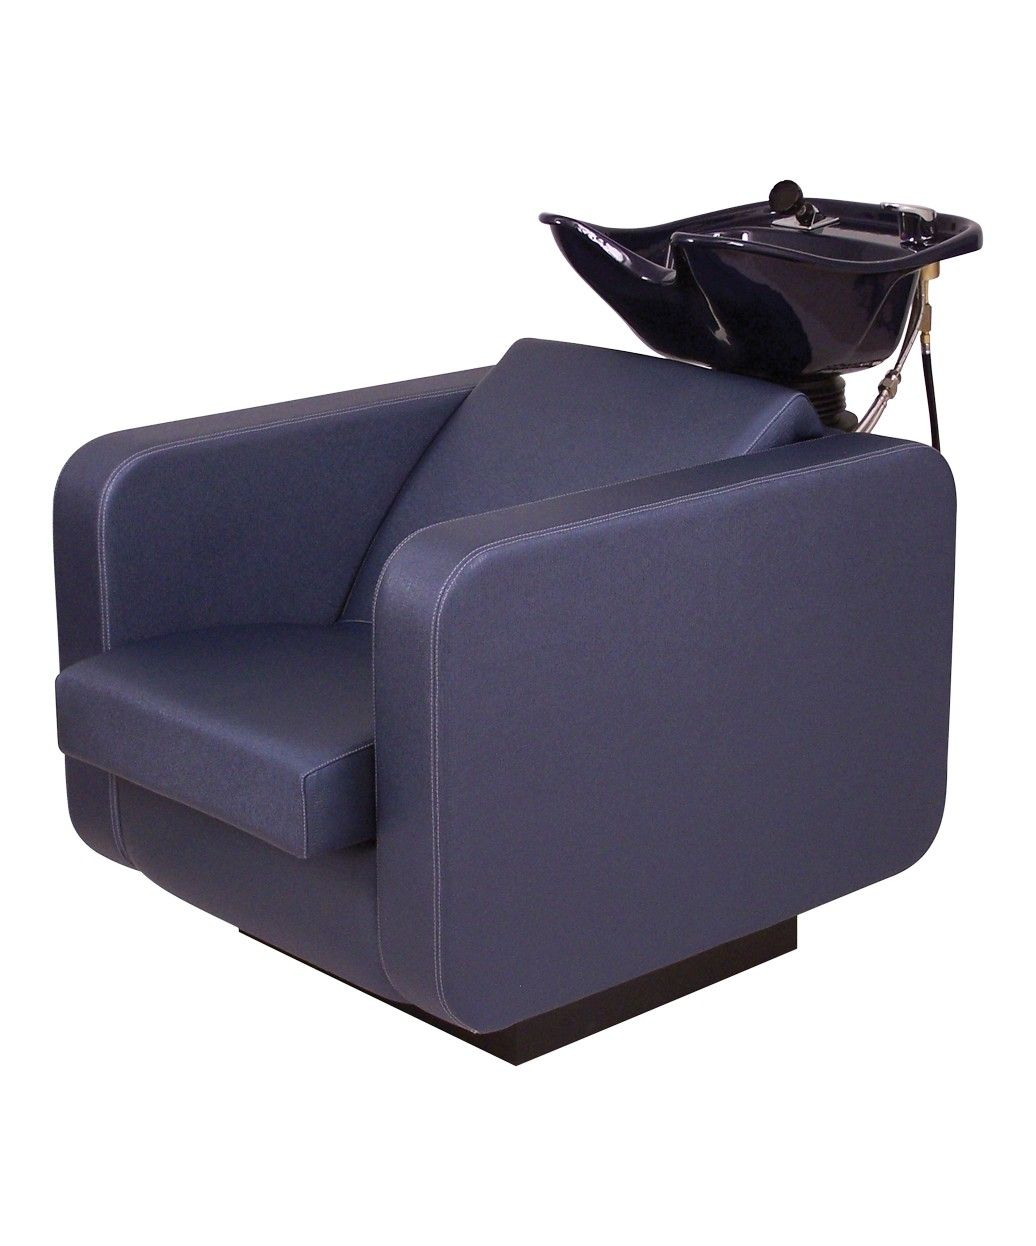 Backwash Chairs For Sale 2 And Table Belvedere Ph04 Plush Unit Salon Salons Furniture